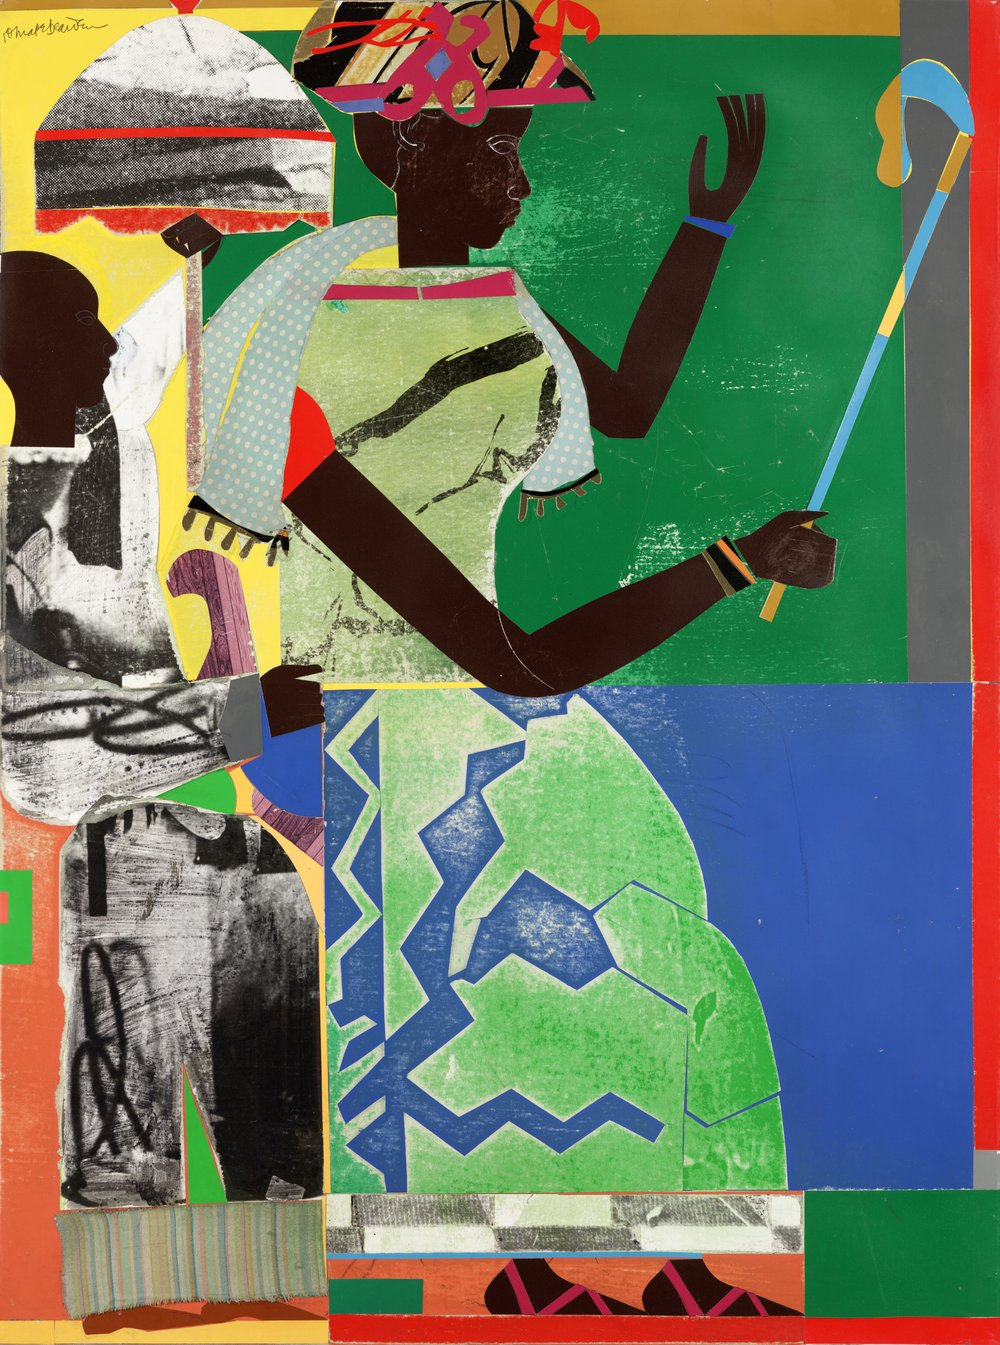 Sha-Ba, 1970. Collage on paper, cloth and synthetic polymer paint on composition board, 48 x 35 7/8 in. (122 x 91.2 cm). Photography credit: Allen Phillips/Wadsworth Atheneum. Wadsworth Atheneum Museum of Art, Hartford, Connecticut. The Ella Gallup Sumner and Mary Catlin Sumner Collection Fund, 1971.12.